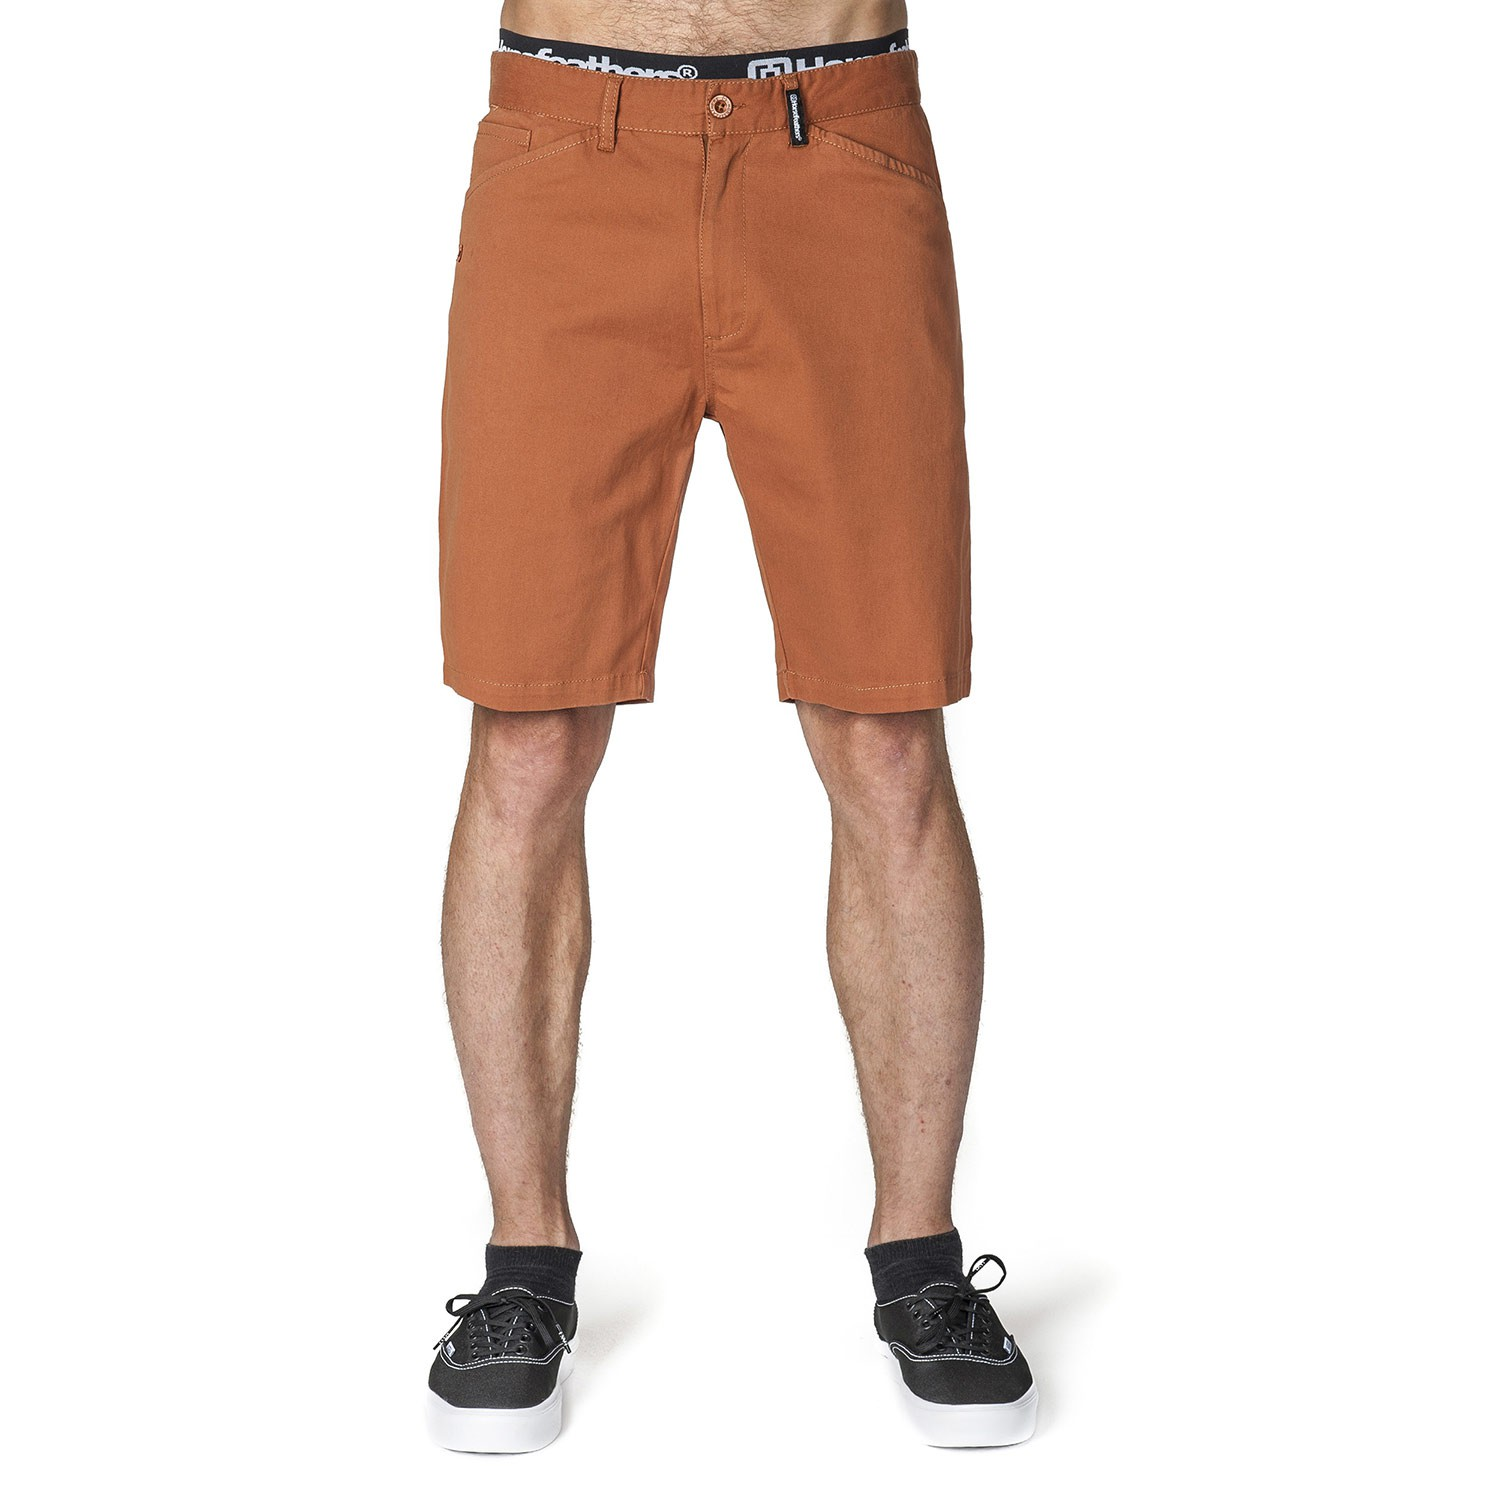 Kraťasy Horsefeathers Johnny Shorts rust